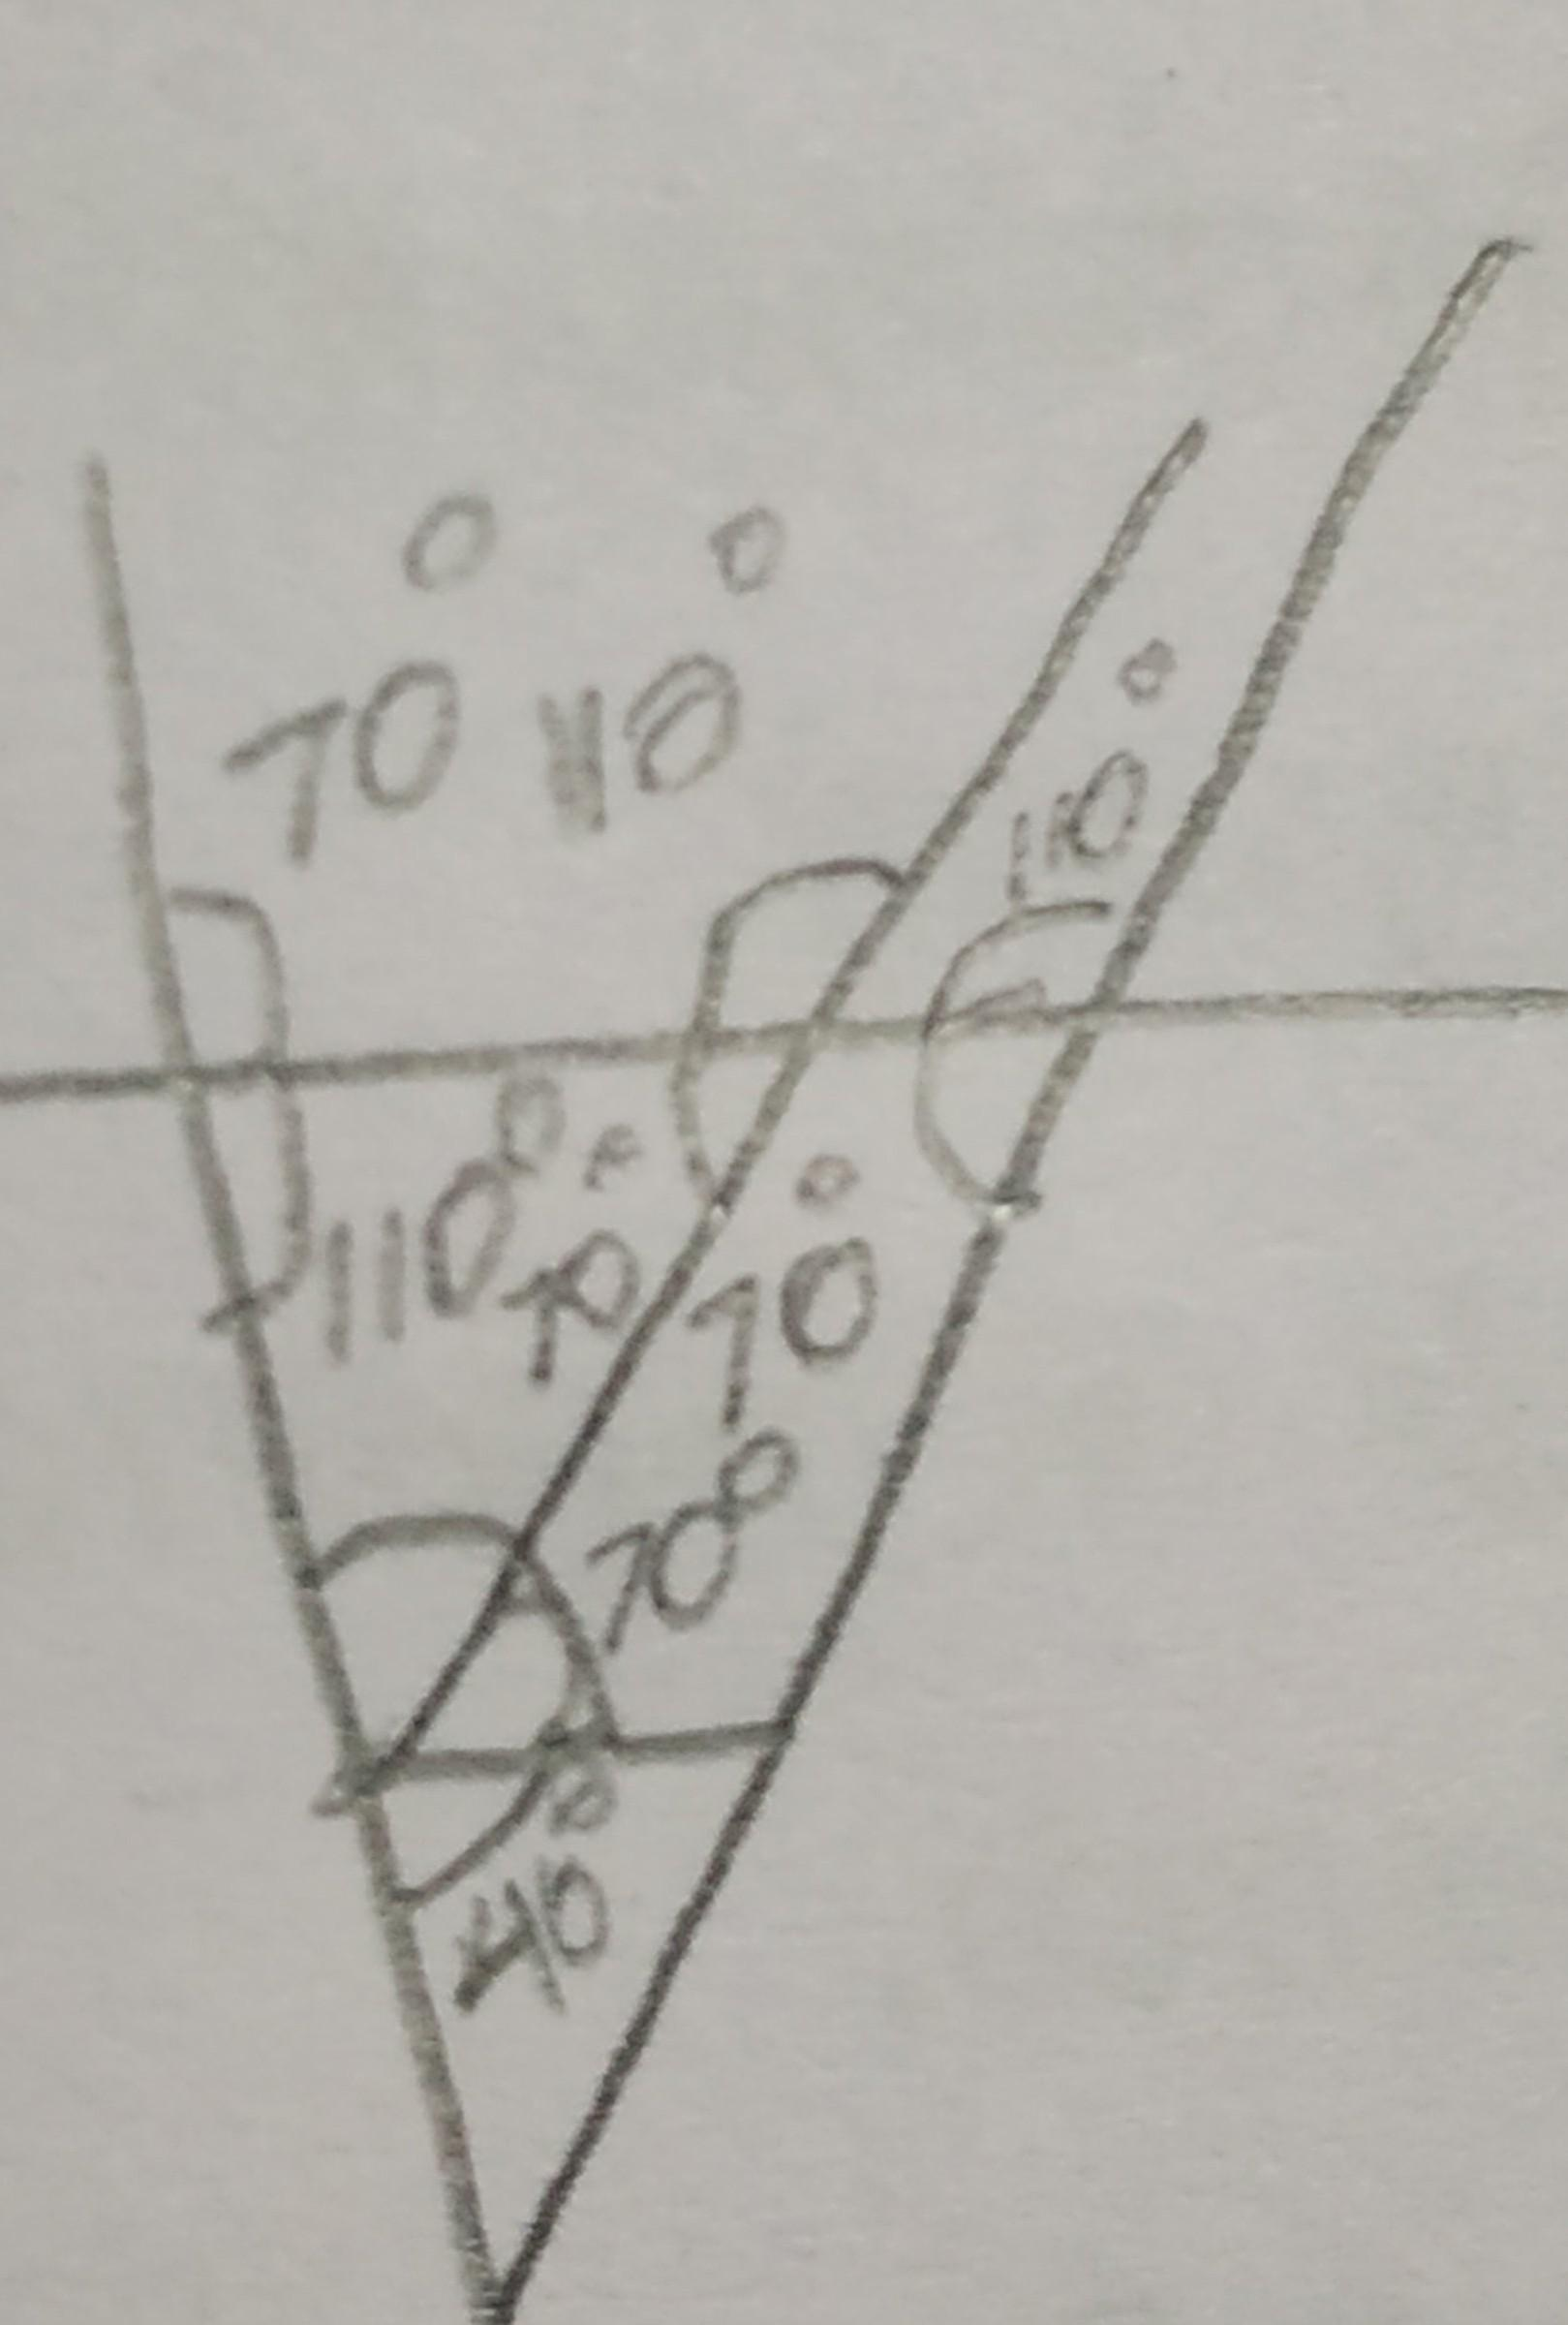 Hotsin The Diagram Given Below Find The Angles X Y And Z